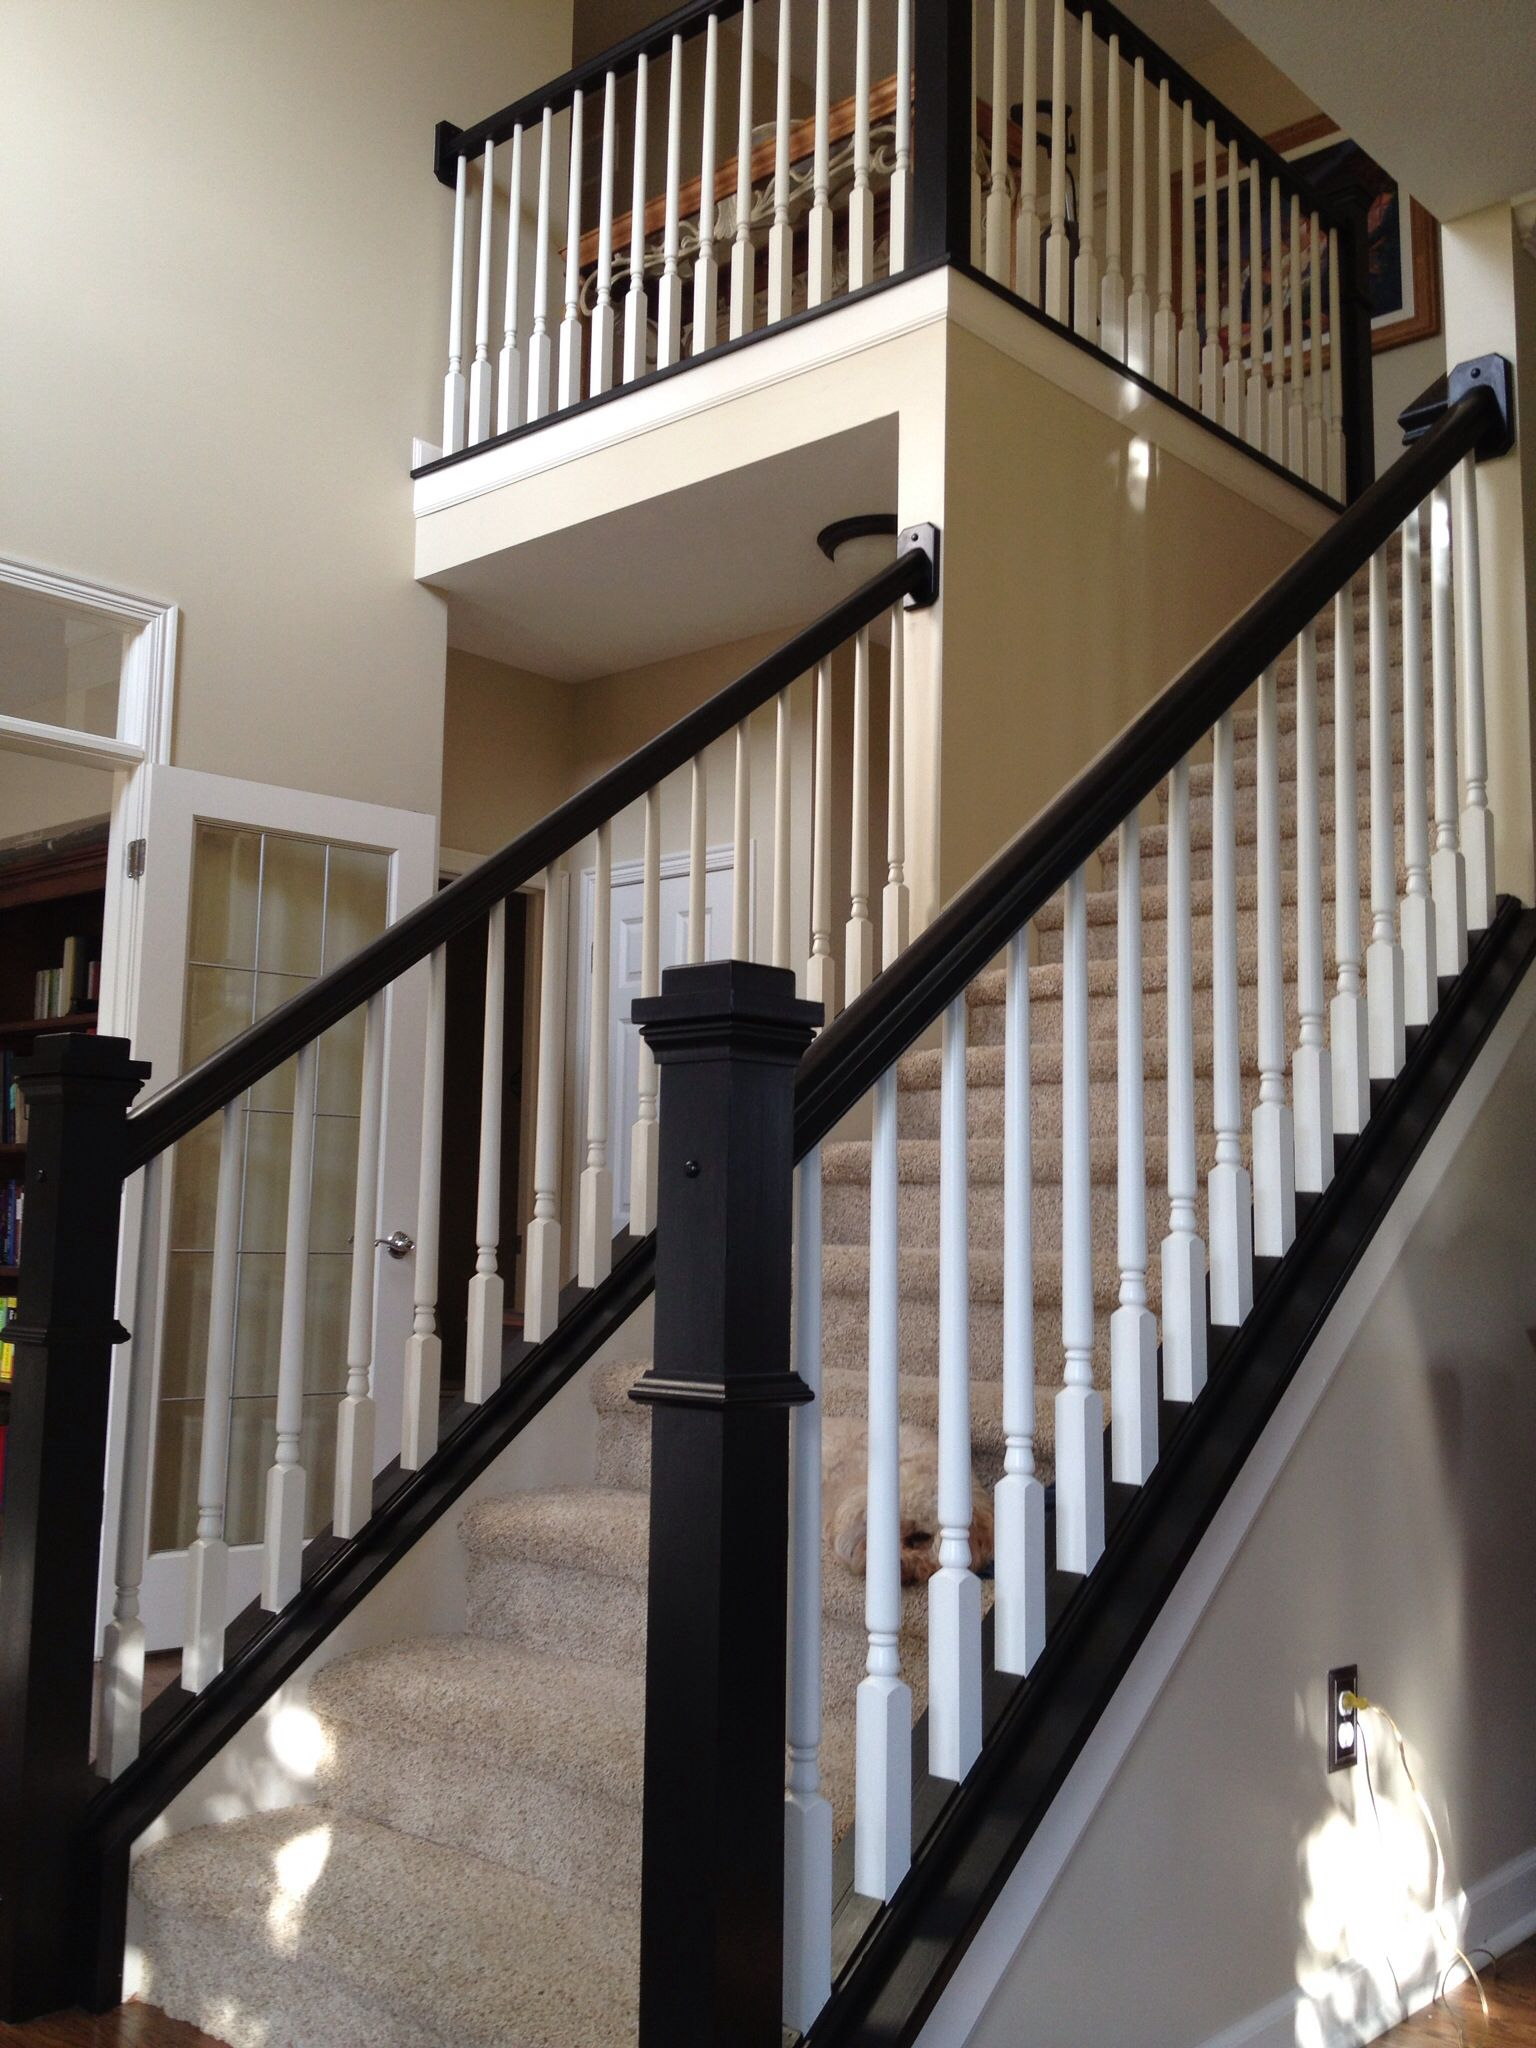 Pin By Tracy Neidel On For The Home Black Stair Railing White   Black Banister With White Spindles   Round   Antique   Finished Painted Stair   Oak Handrail Basket   Brazilian Cherry Stair